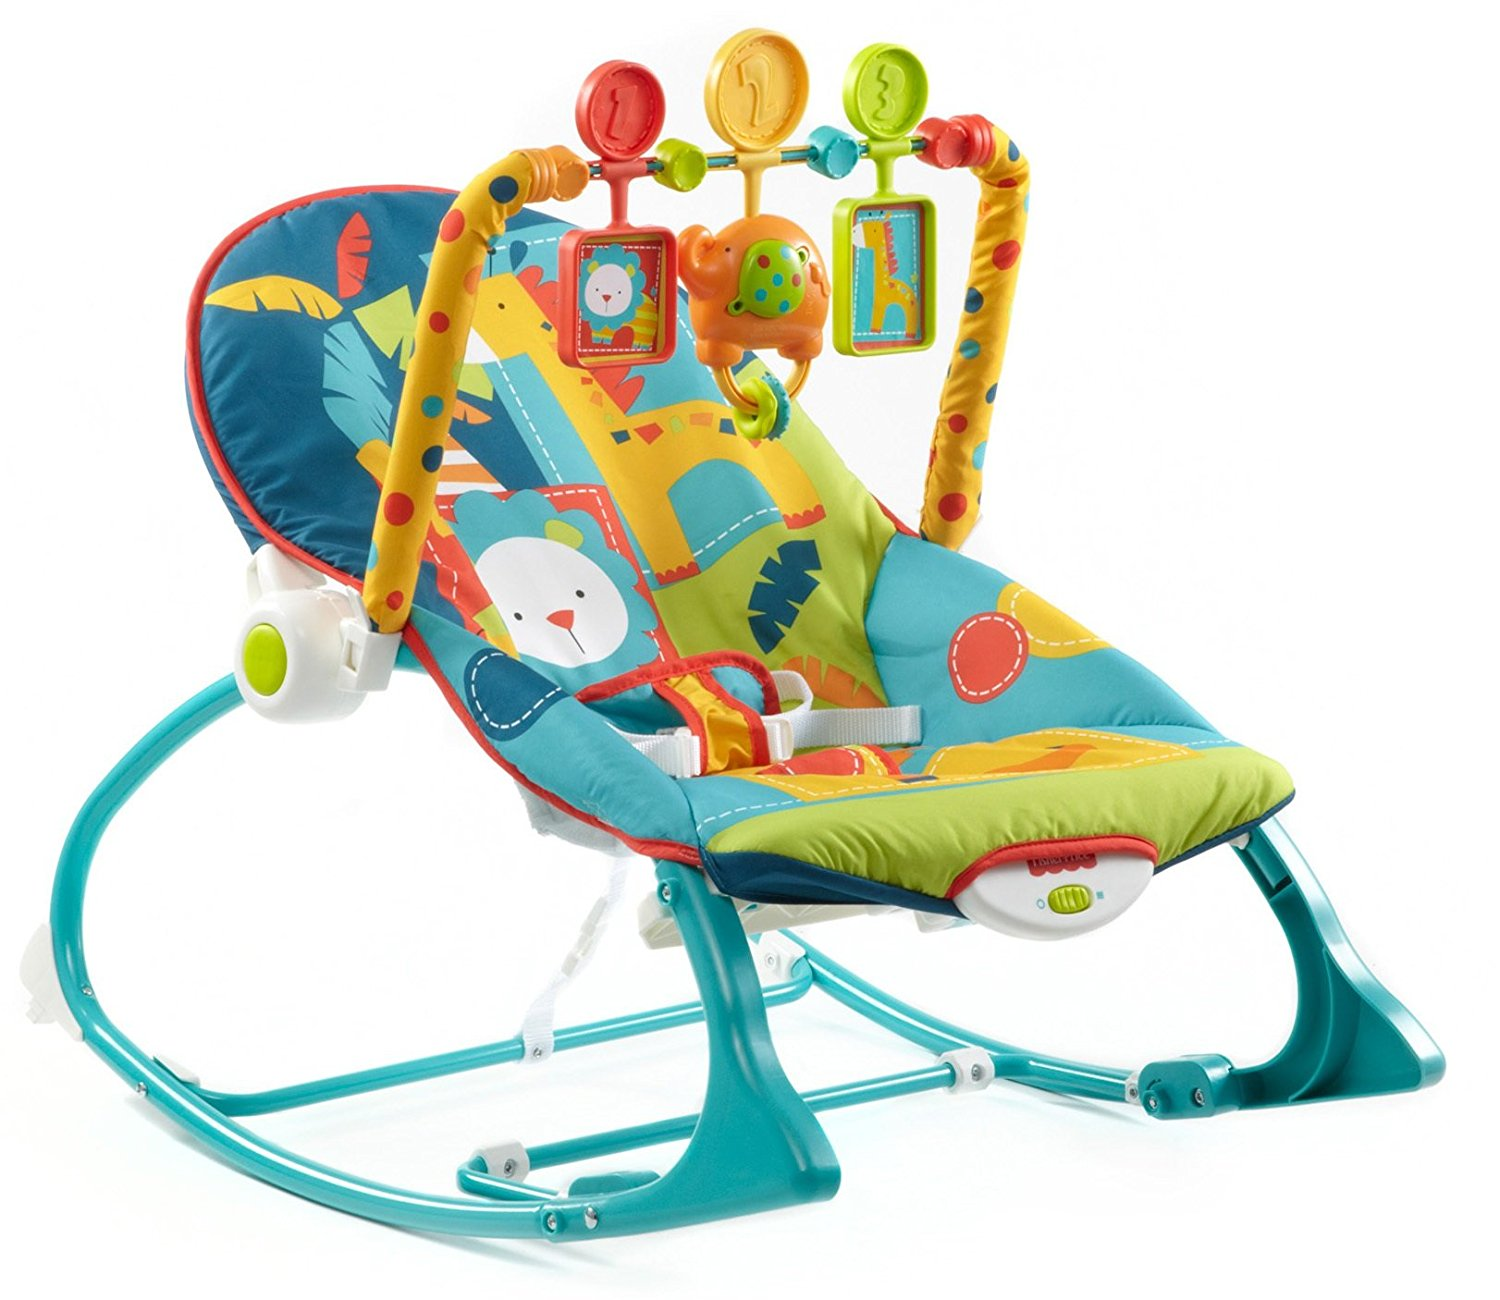 Beautiful Amazon.com : Fisher-Price Infant To Toddler Rocker, Dark Safari : Infant baby rocking chair